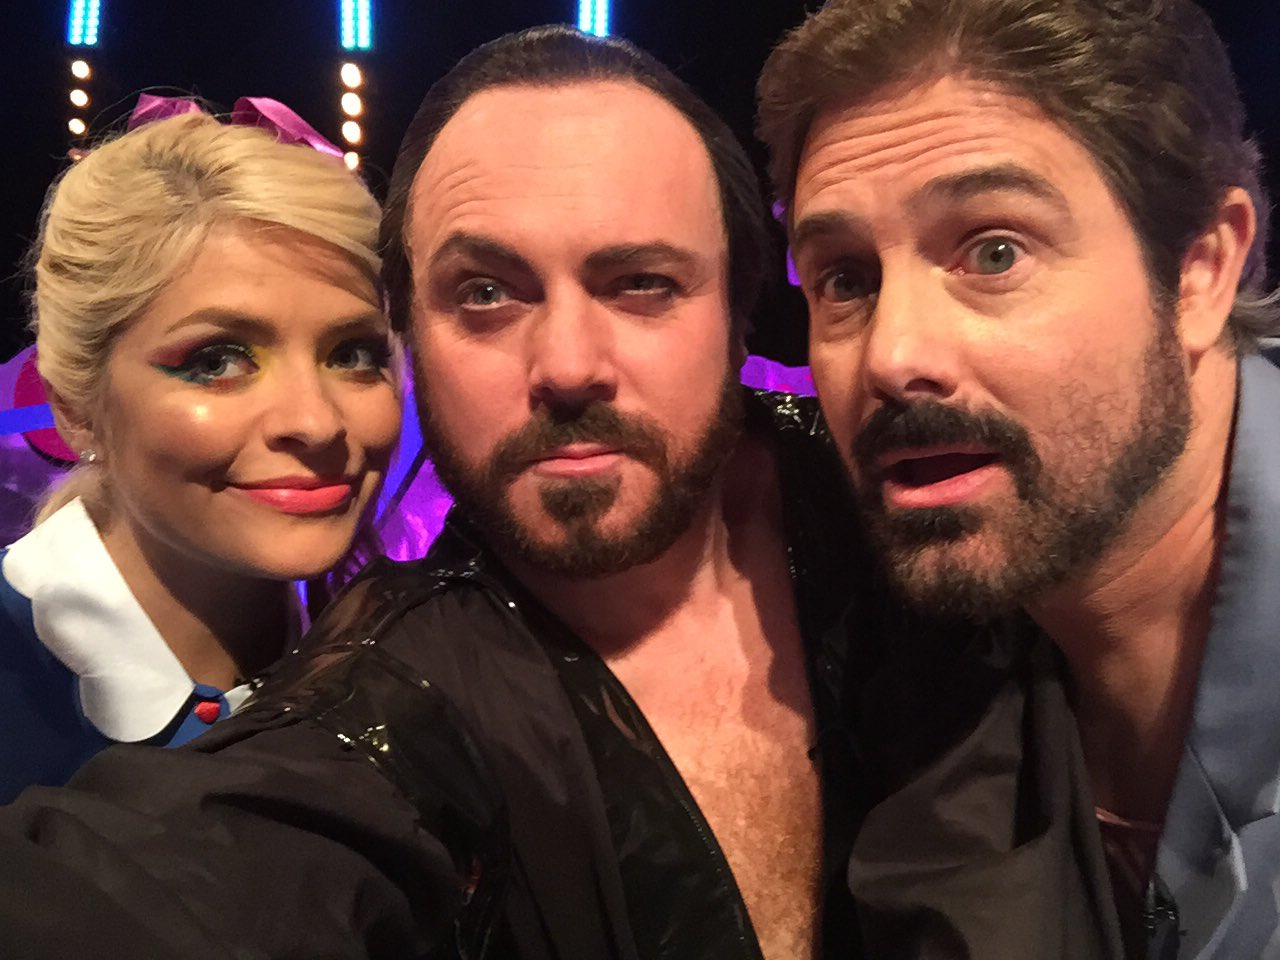 Holly, General zod, Billy from Gremlins! Top bloke! Fanks for coming on @zwgman https://t.co/TGEnc7uicU